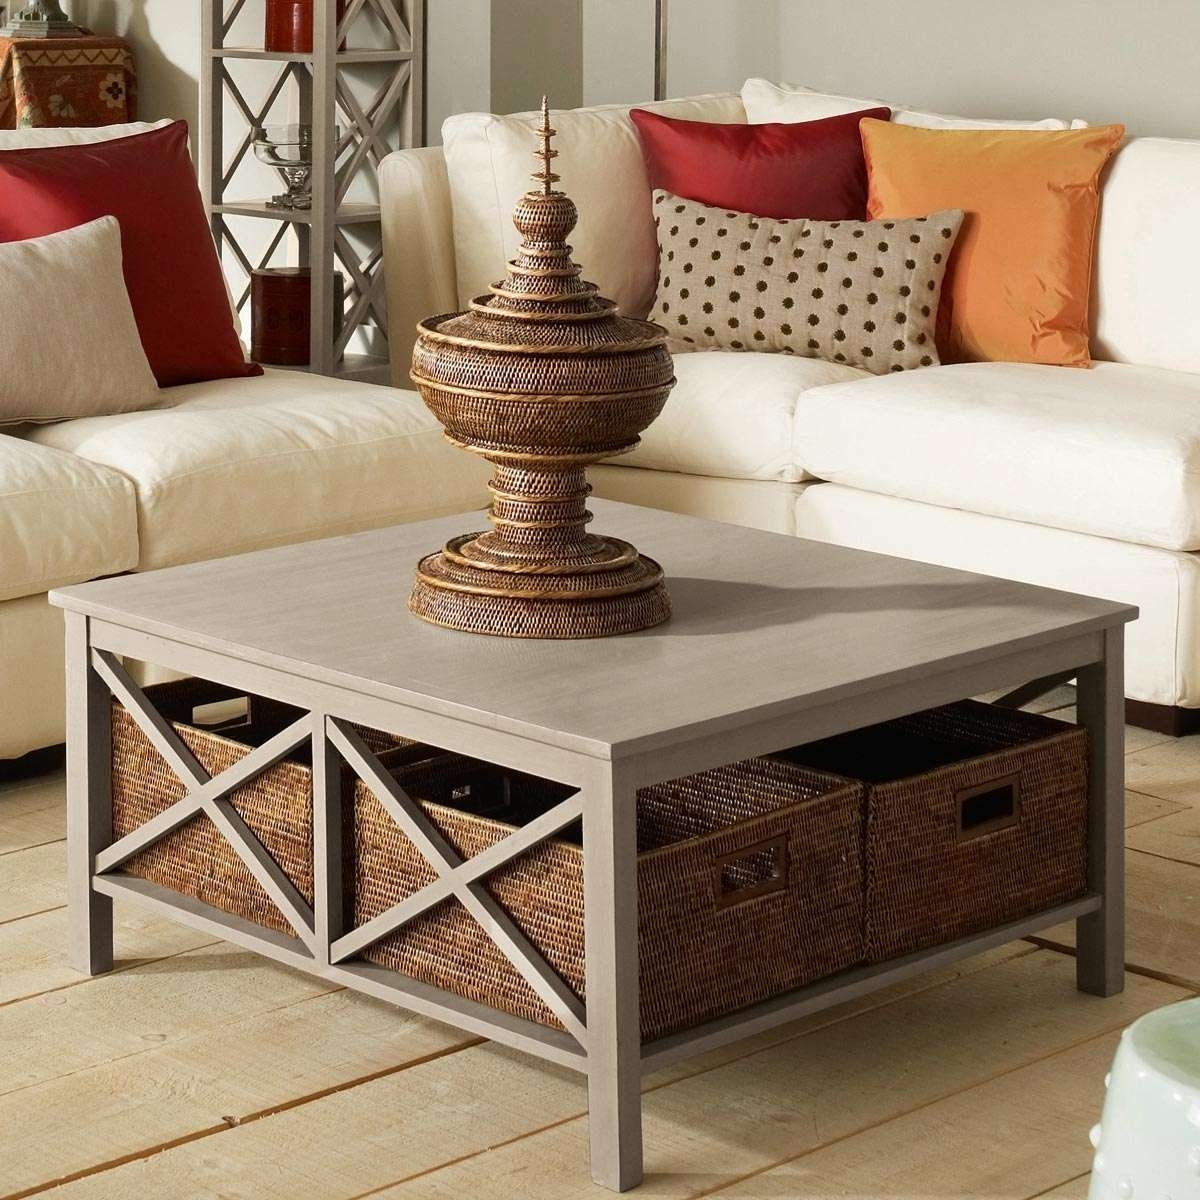 Square Coffee Table With Storage Coffee Tables Inside Coffee Table Intended For Well Known Square Storage Coffee Tables (View 16 of 20)